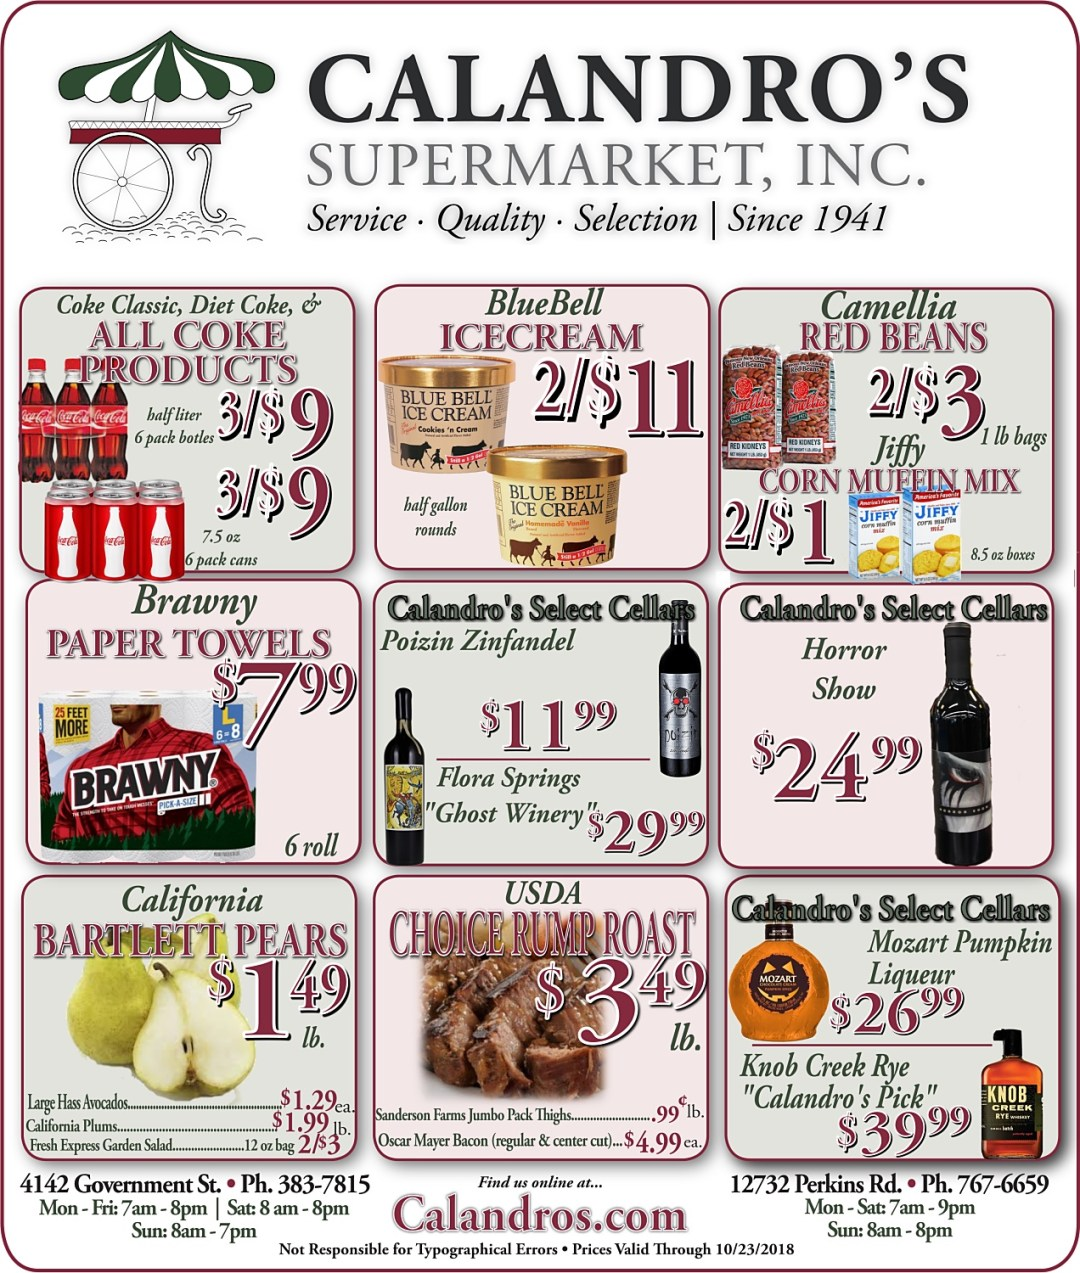 Amazing Weekly Deals @ Calandro's this week (10/18/2018)